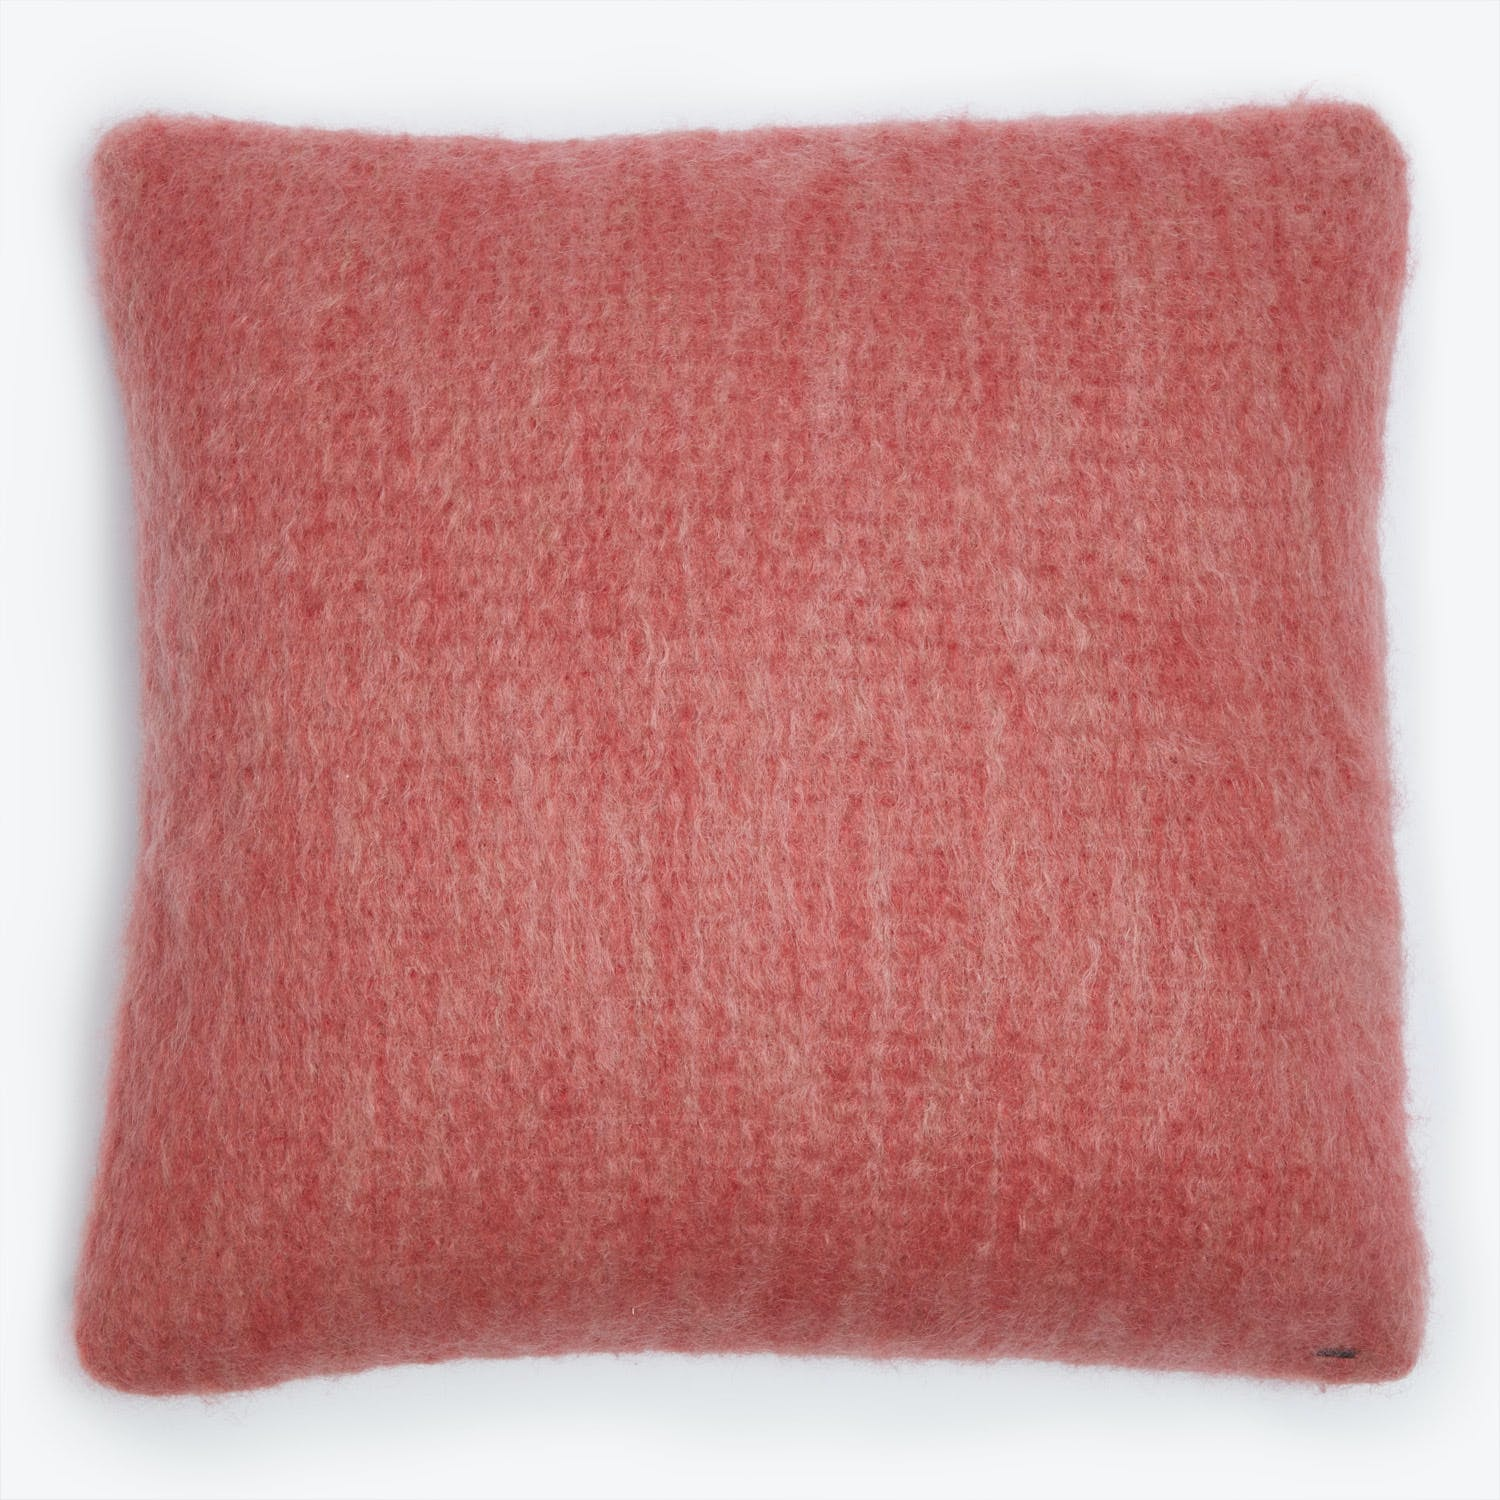 abcDNA Waterfall Mohair Pillow Rouge